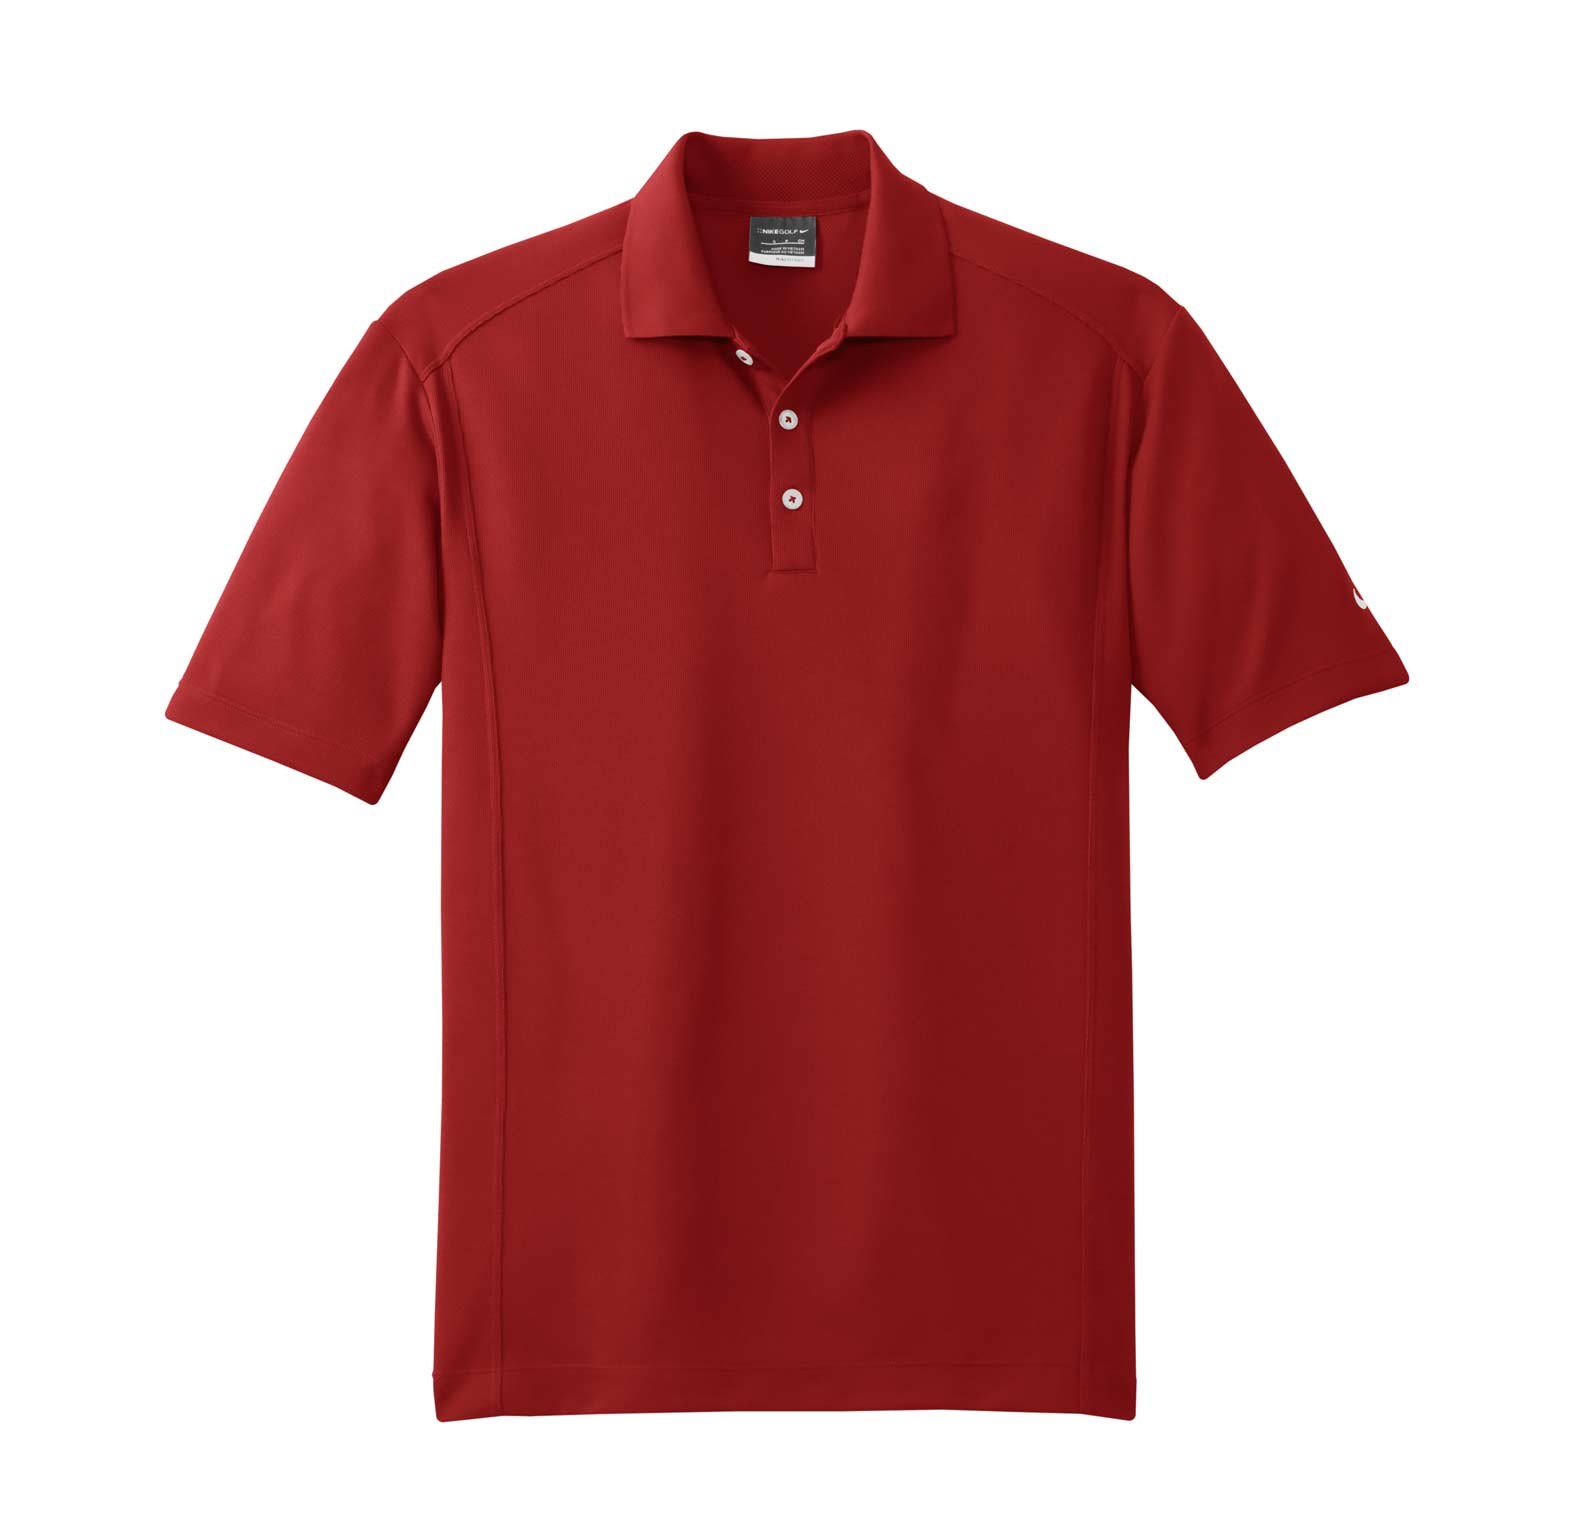 Nike Golf Mens Dri-FIT Classic Sport Shirt